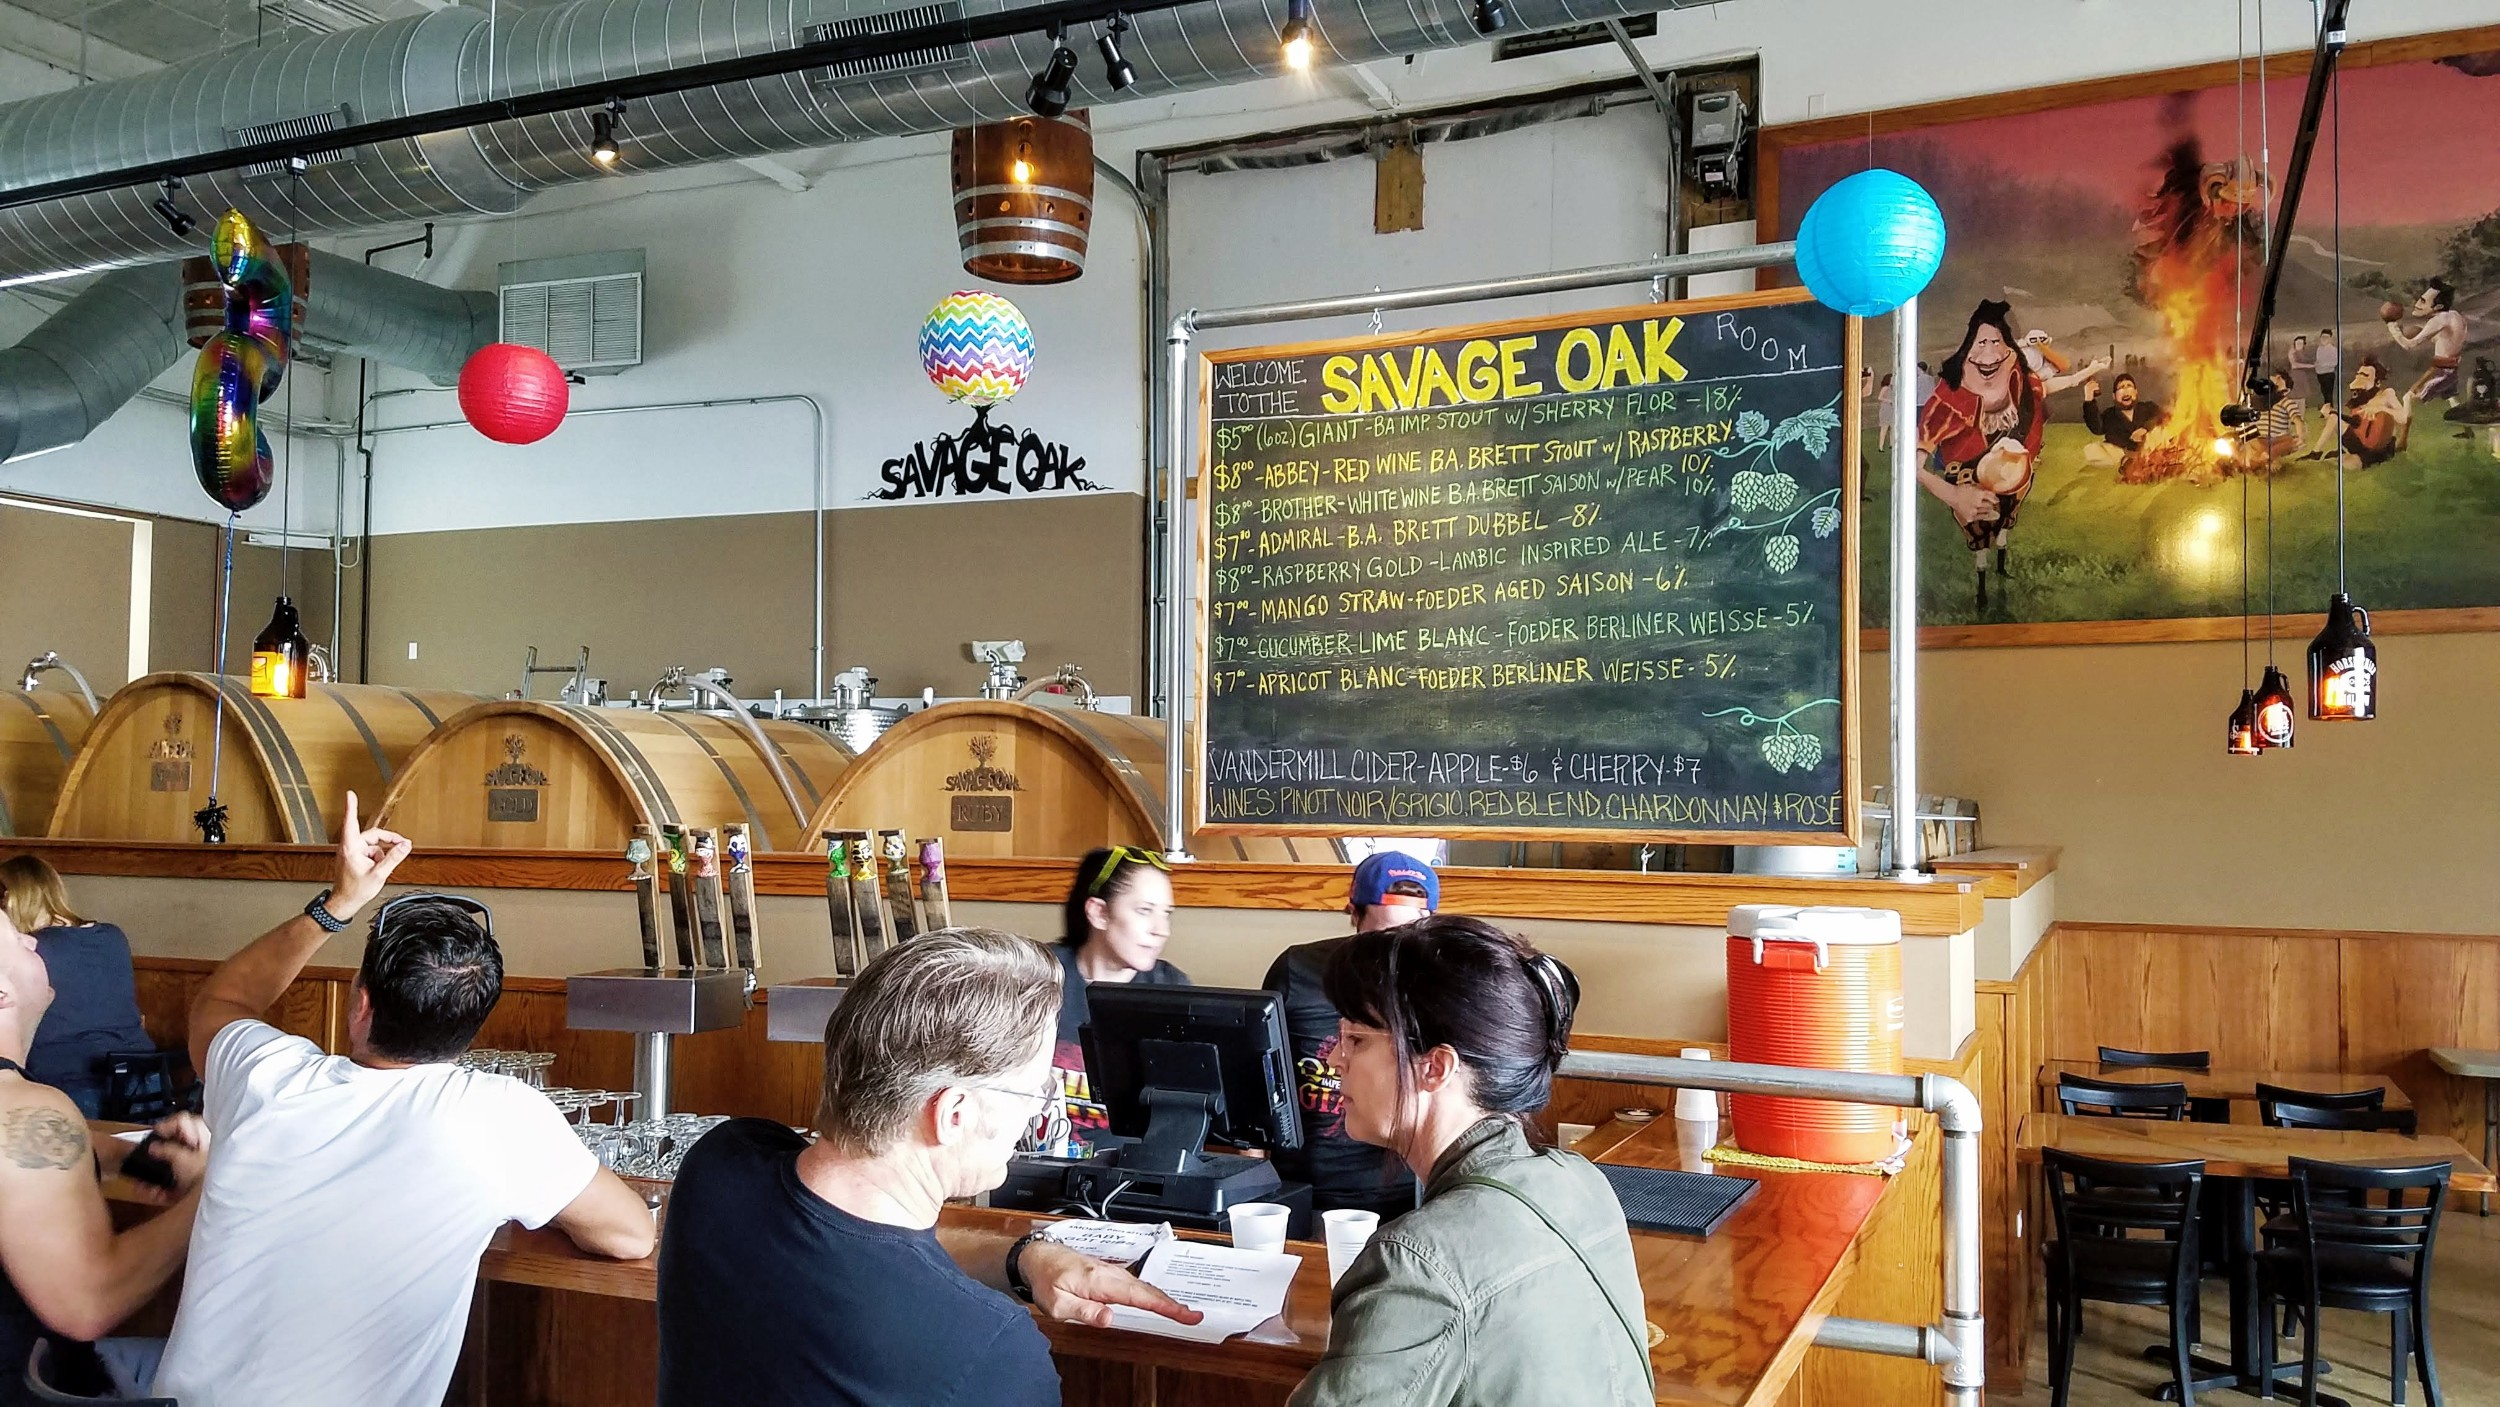 Imperial Oak Brewing Savage Oak Room